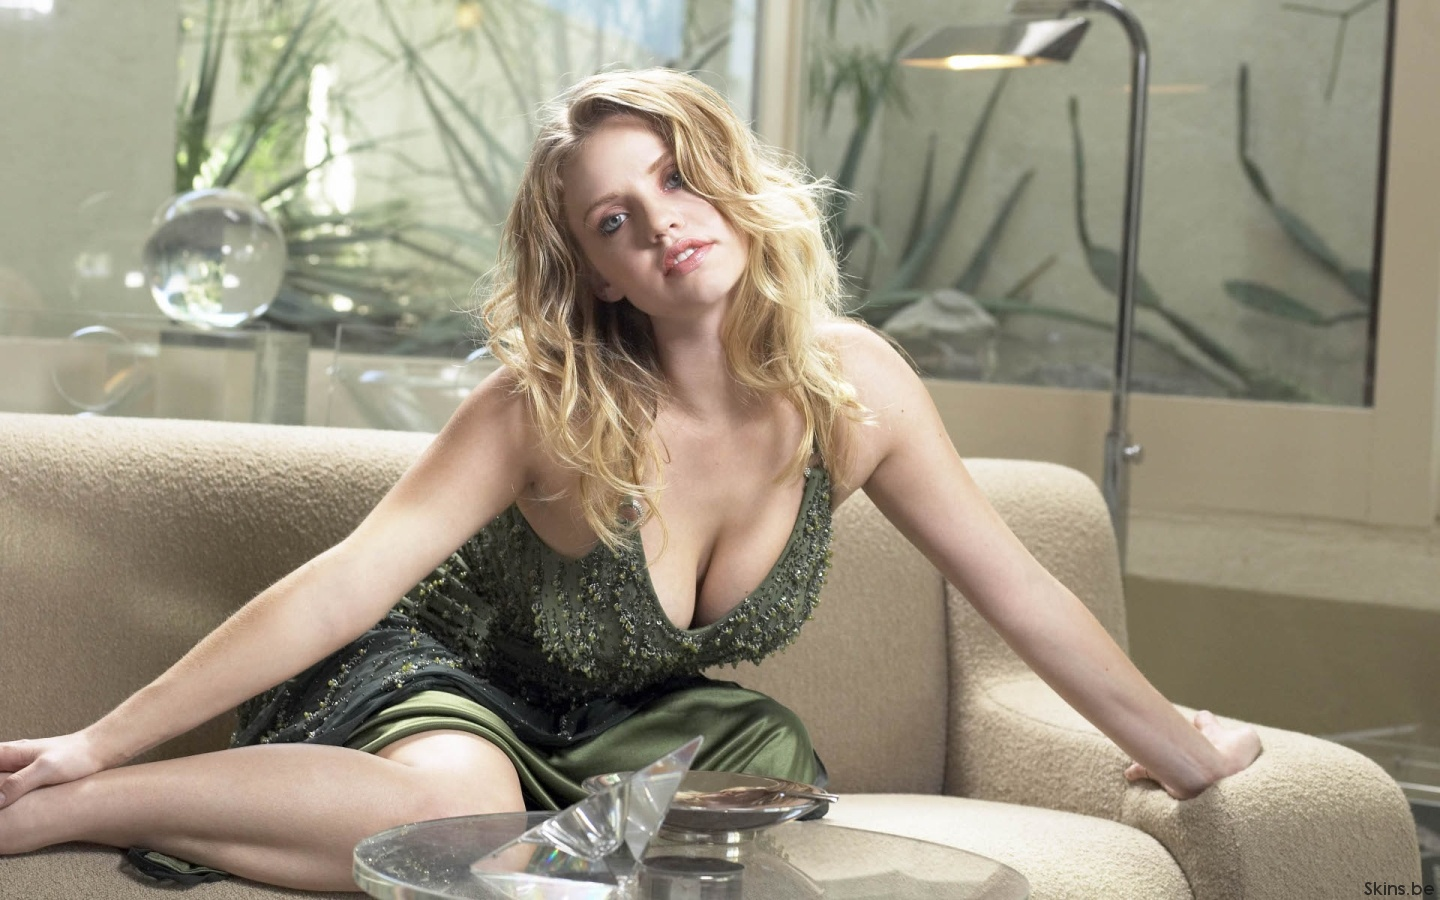 Kelli Garner wallpaper (#35355)